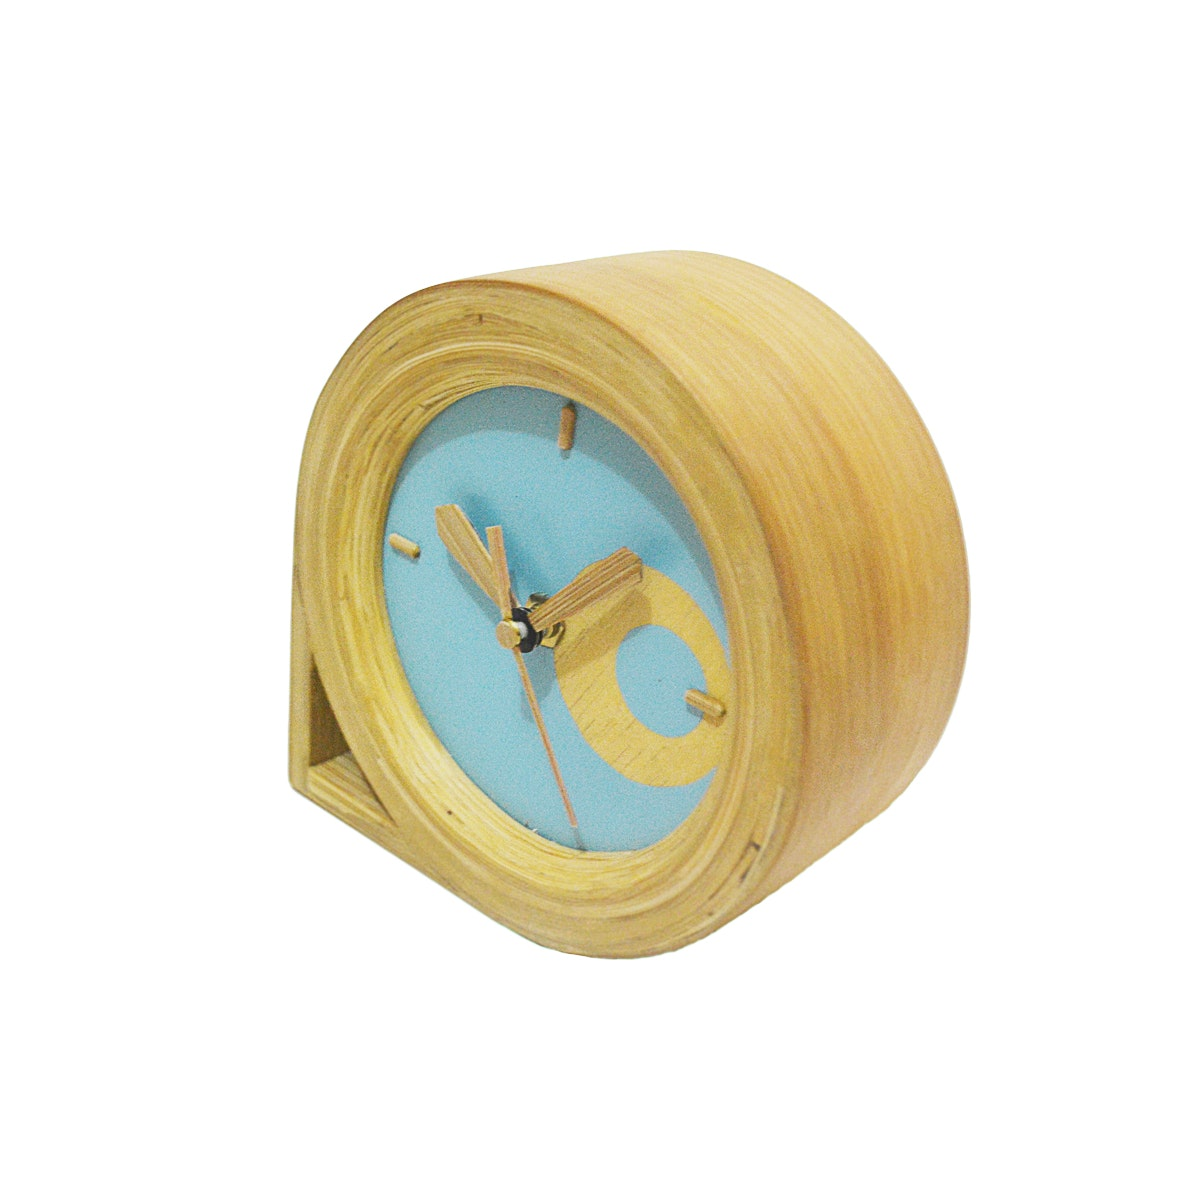 Amygdala Drop Table Clock